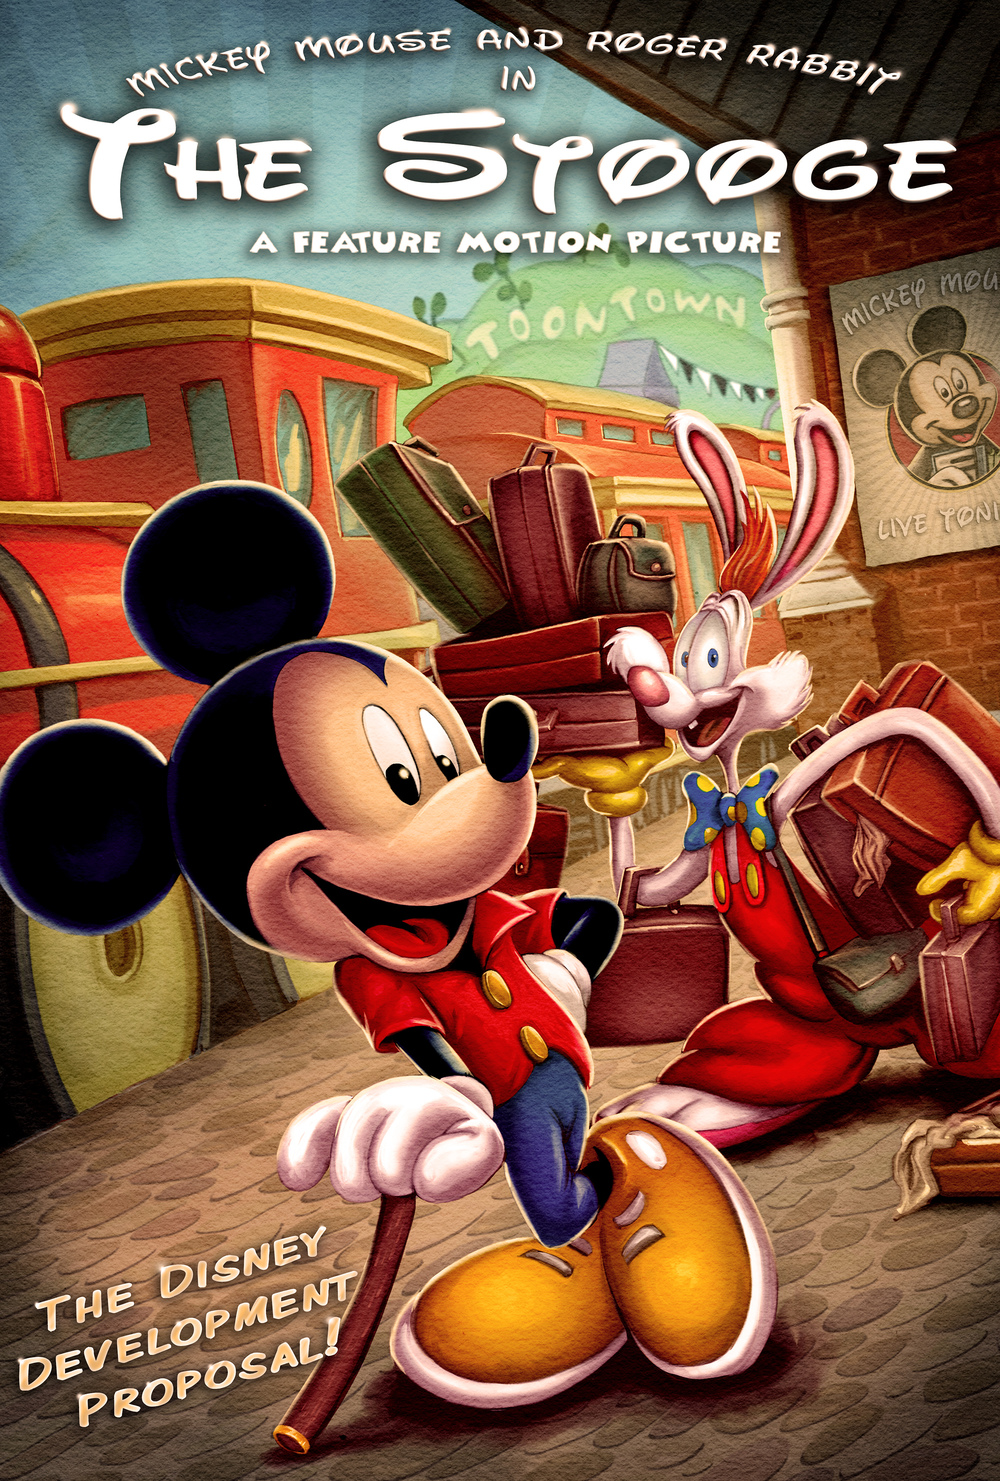 New Promo Art For The Stooge With Mickey Mouse And Roger